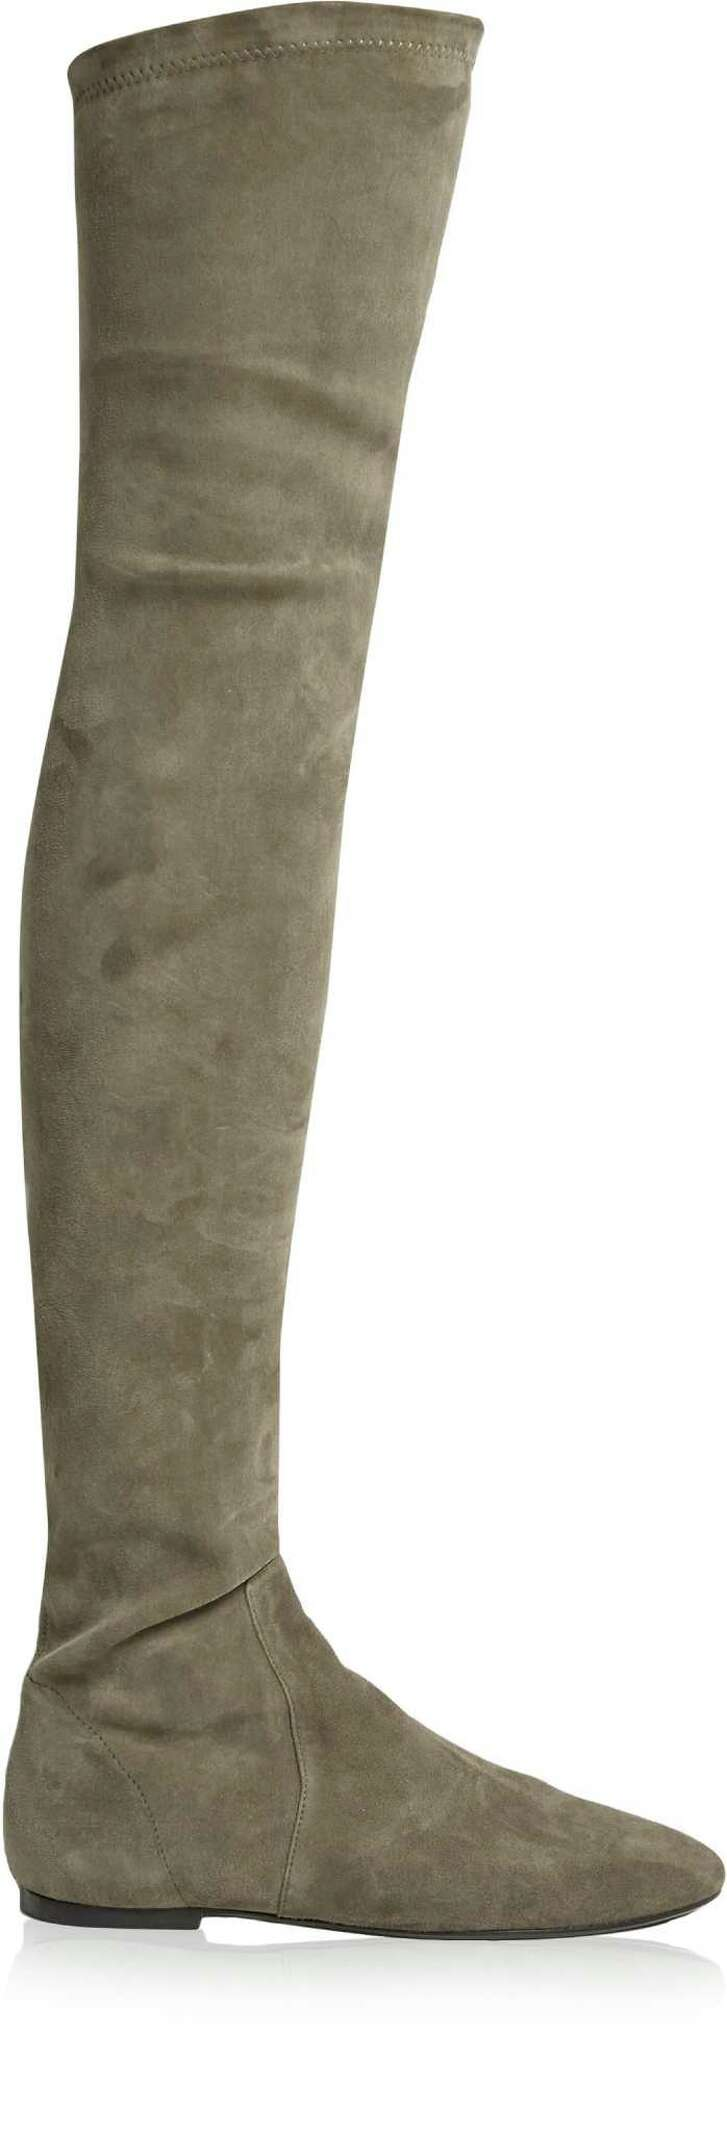 Isabel Marant  toile Brenna over-the-knee boot, $1,035, at netaporter.com